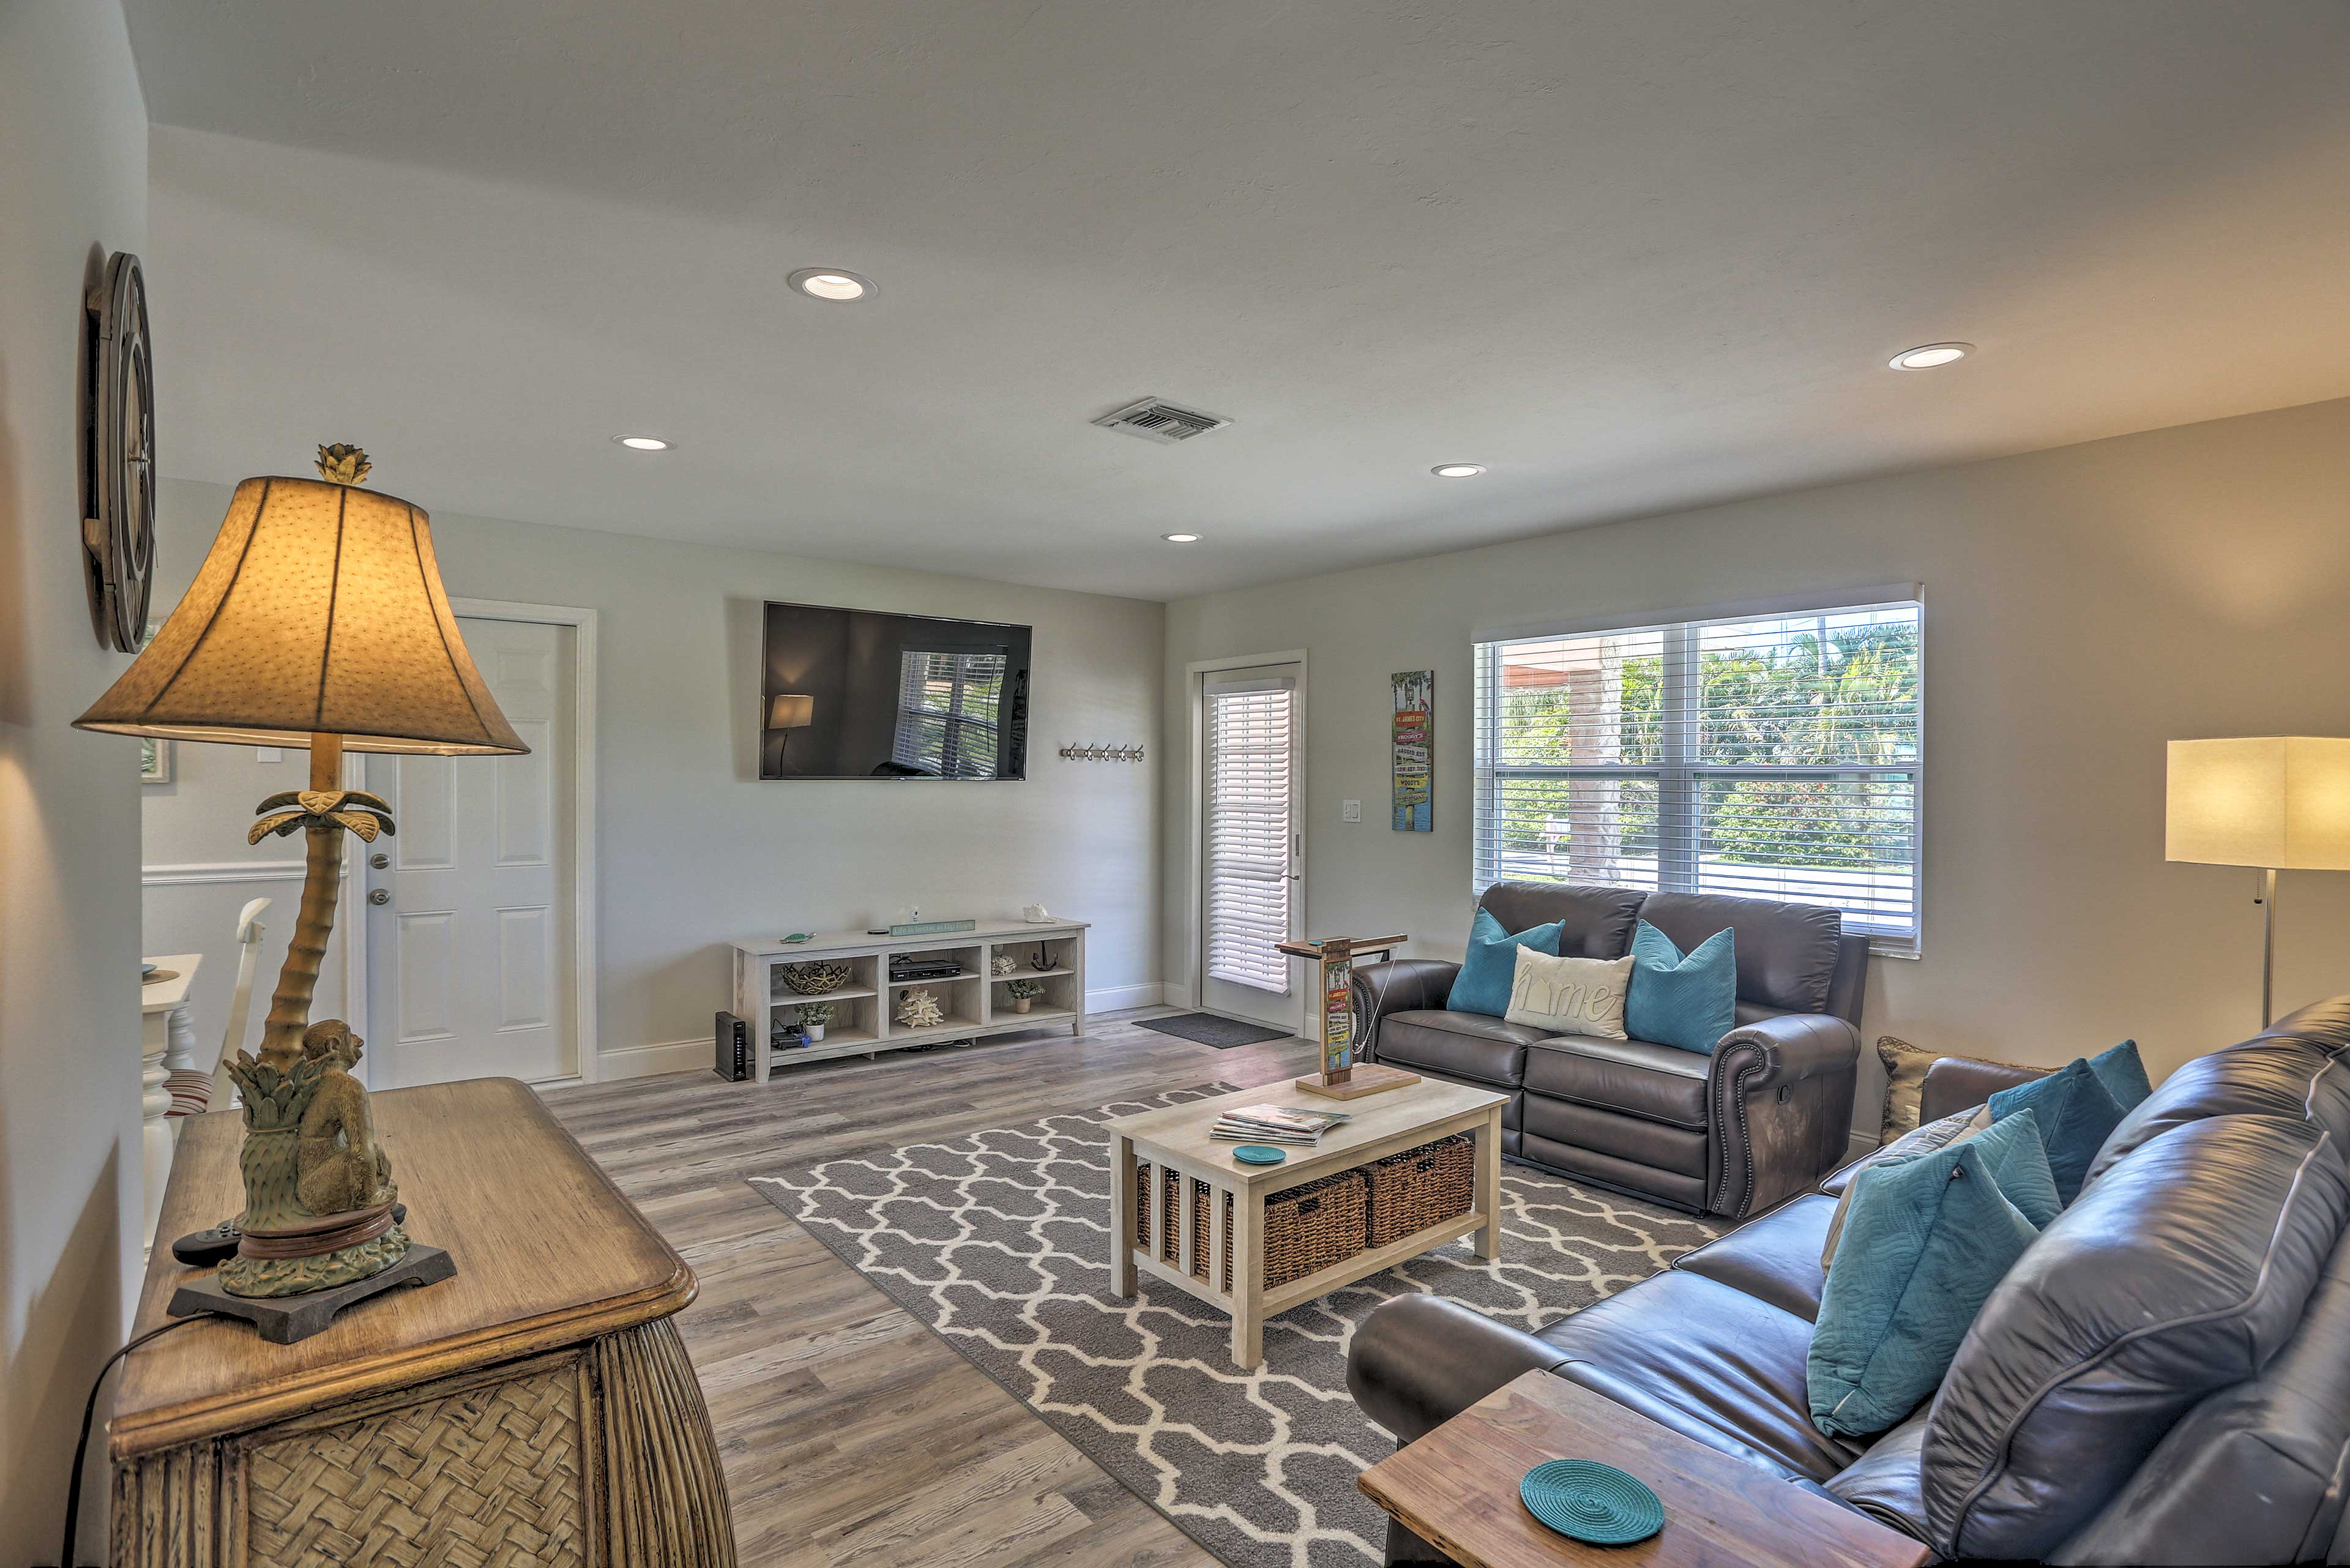 This 1,200-square foot home features 3 bedroom and 2 bathrooms.